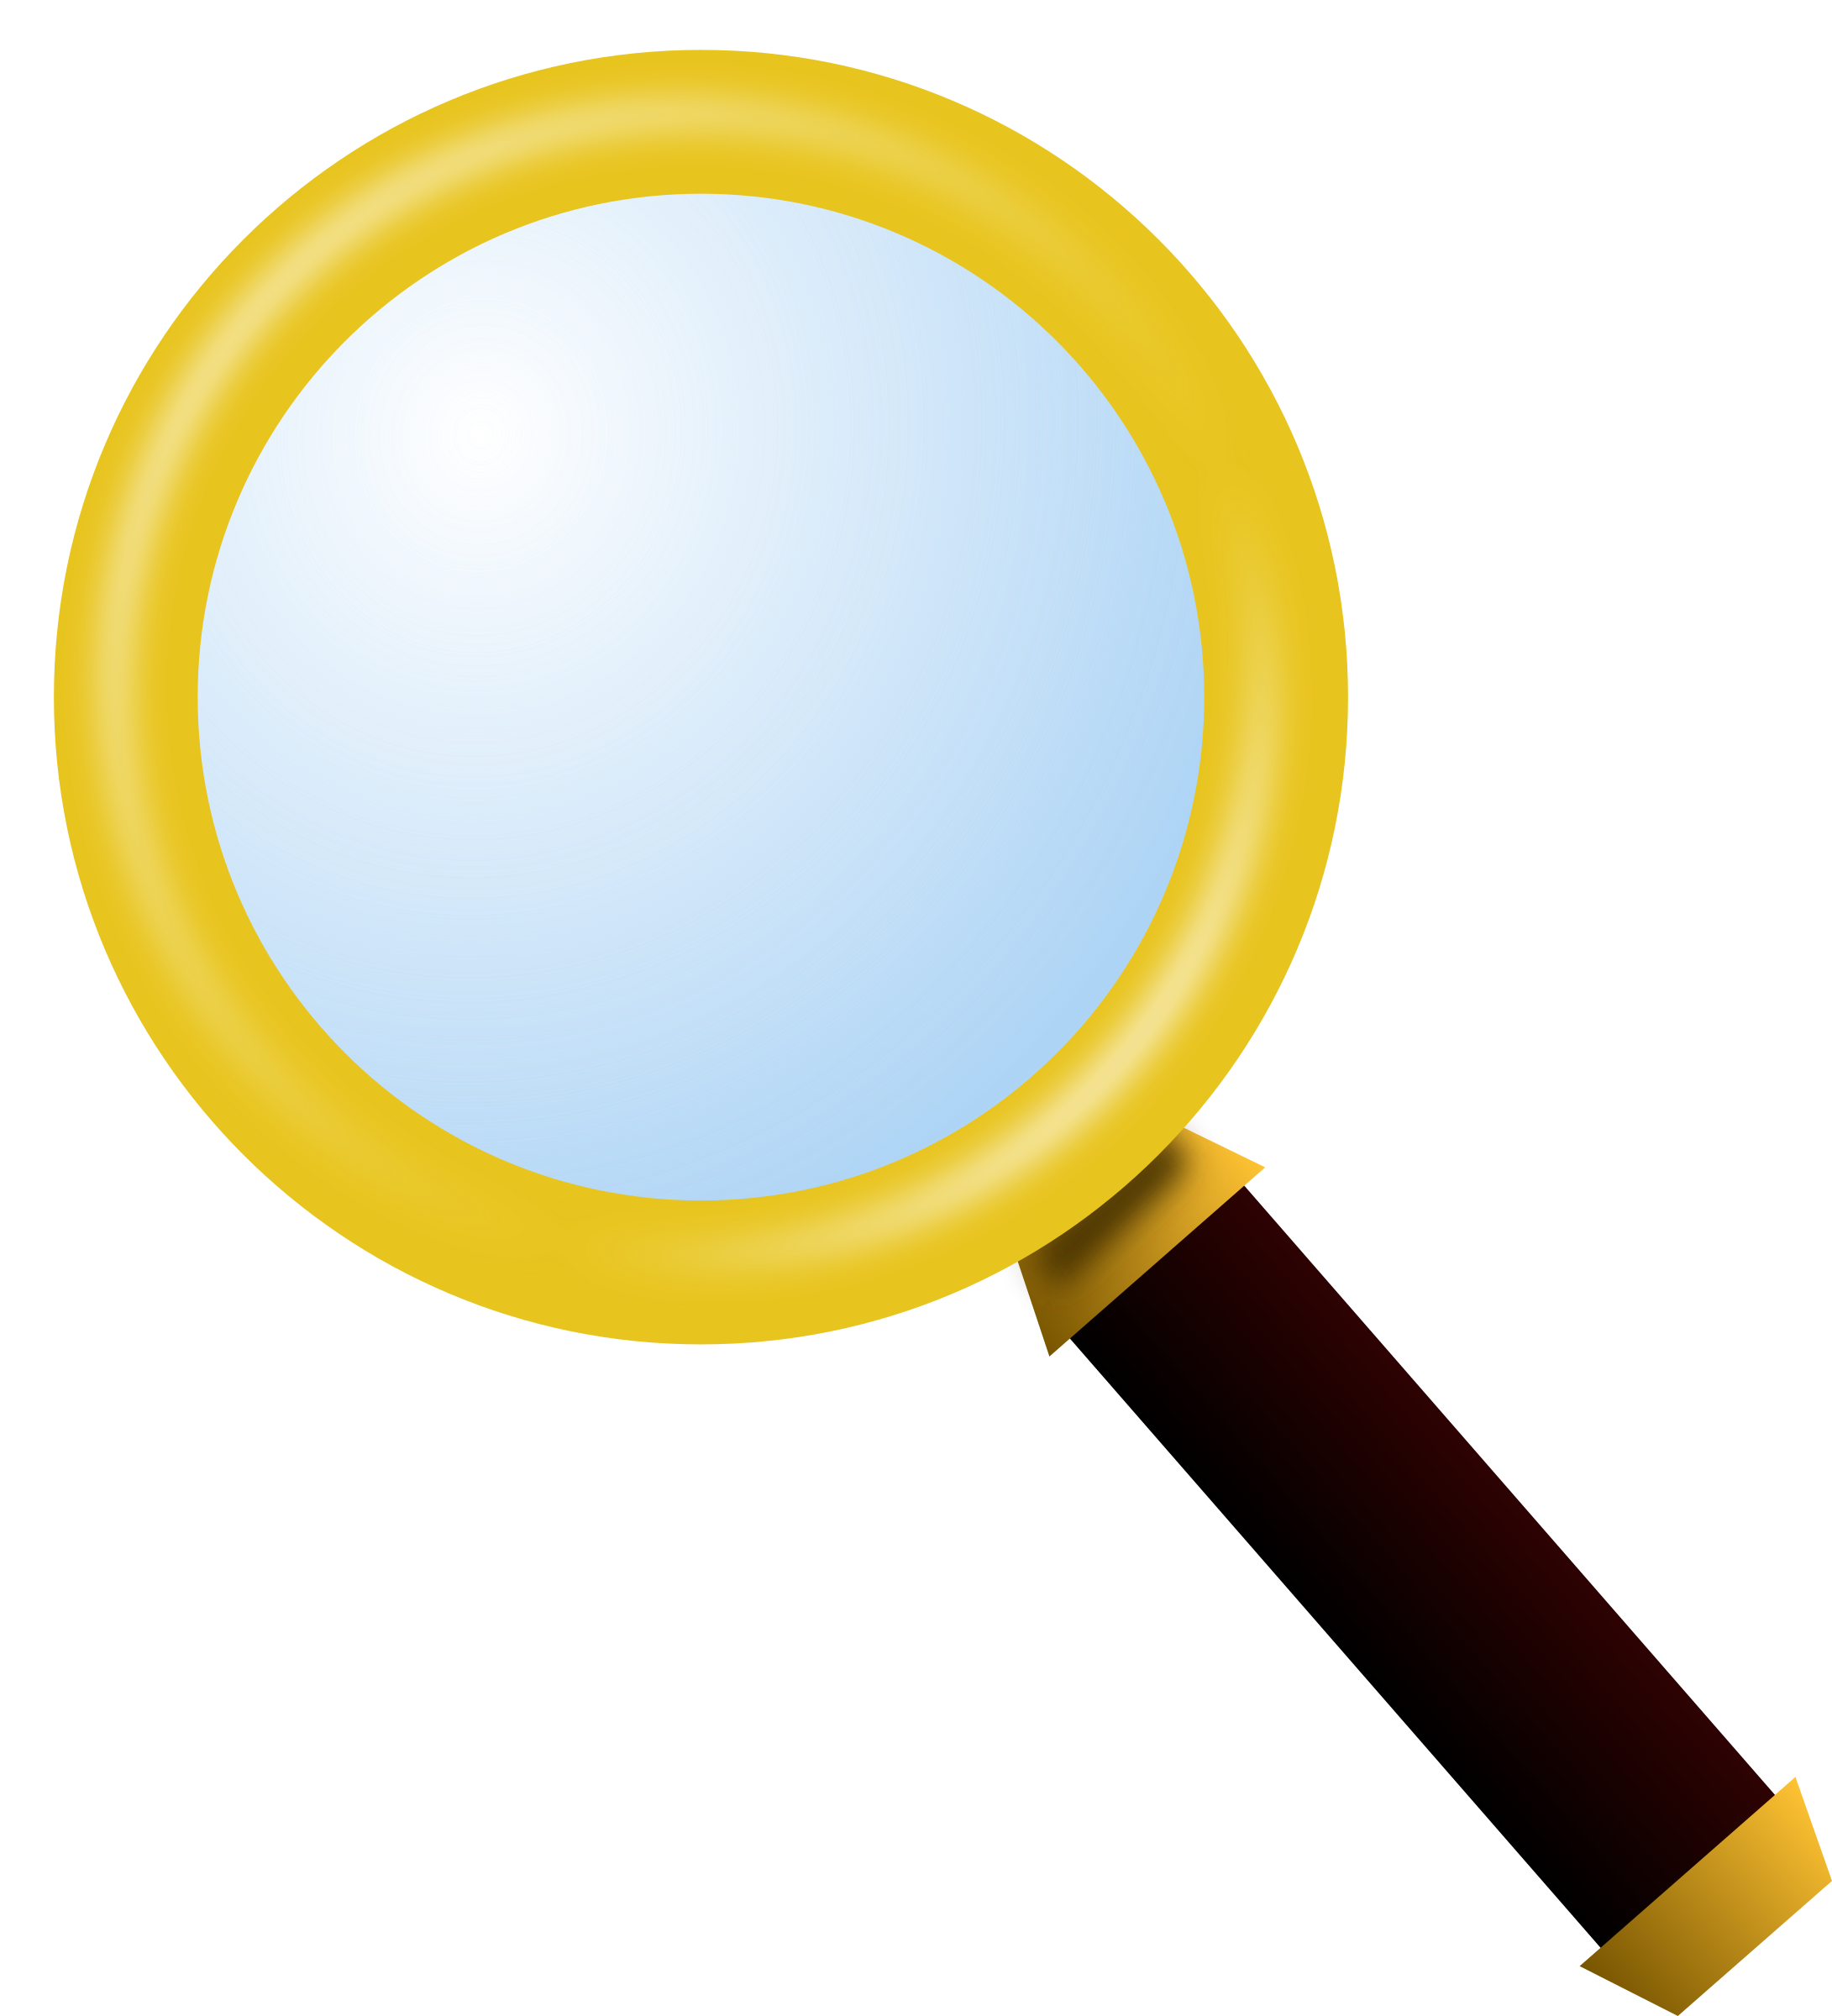 Magnifying glass magnify glass clip art at vector clip art 3.